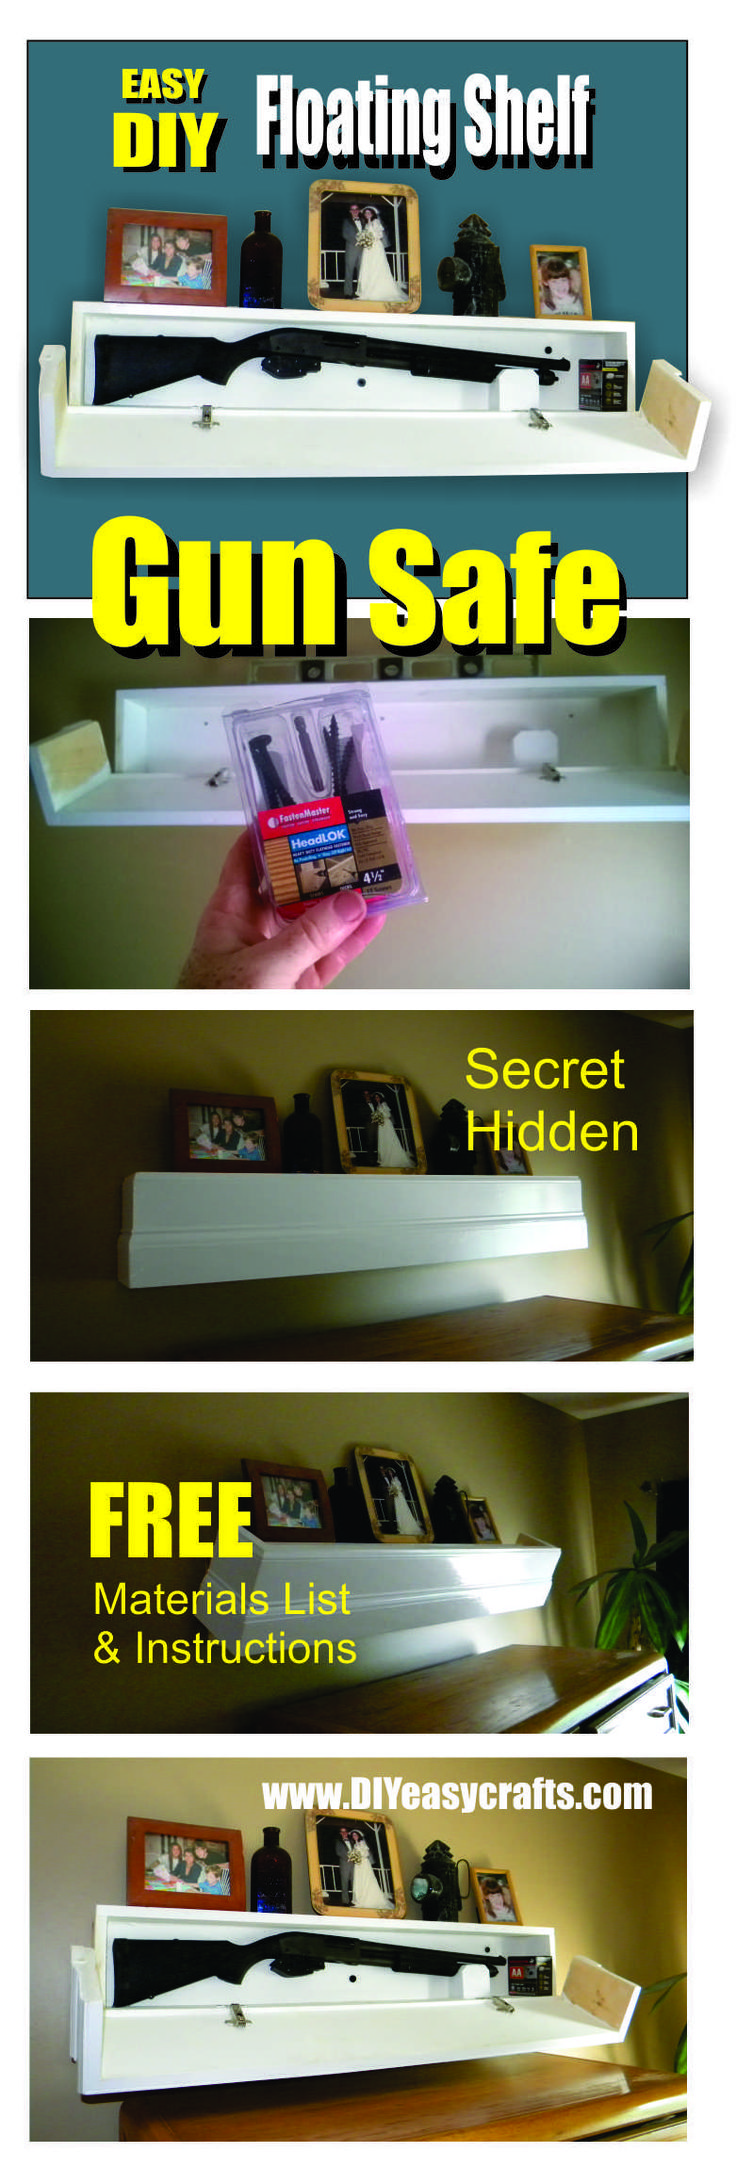 DIY Wood Working Projects: DIY Floating Shelf Secret Hidden Gun Safe - YouTub...